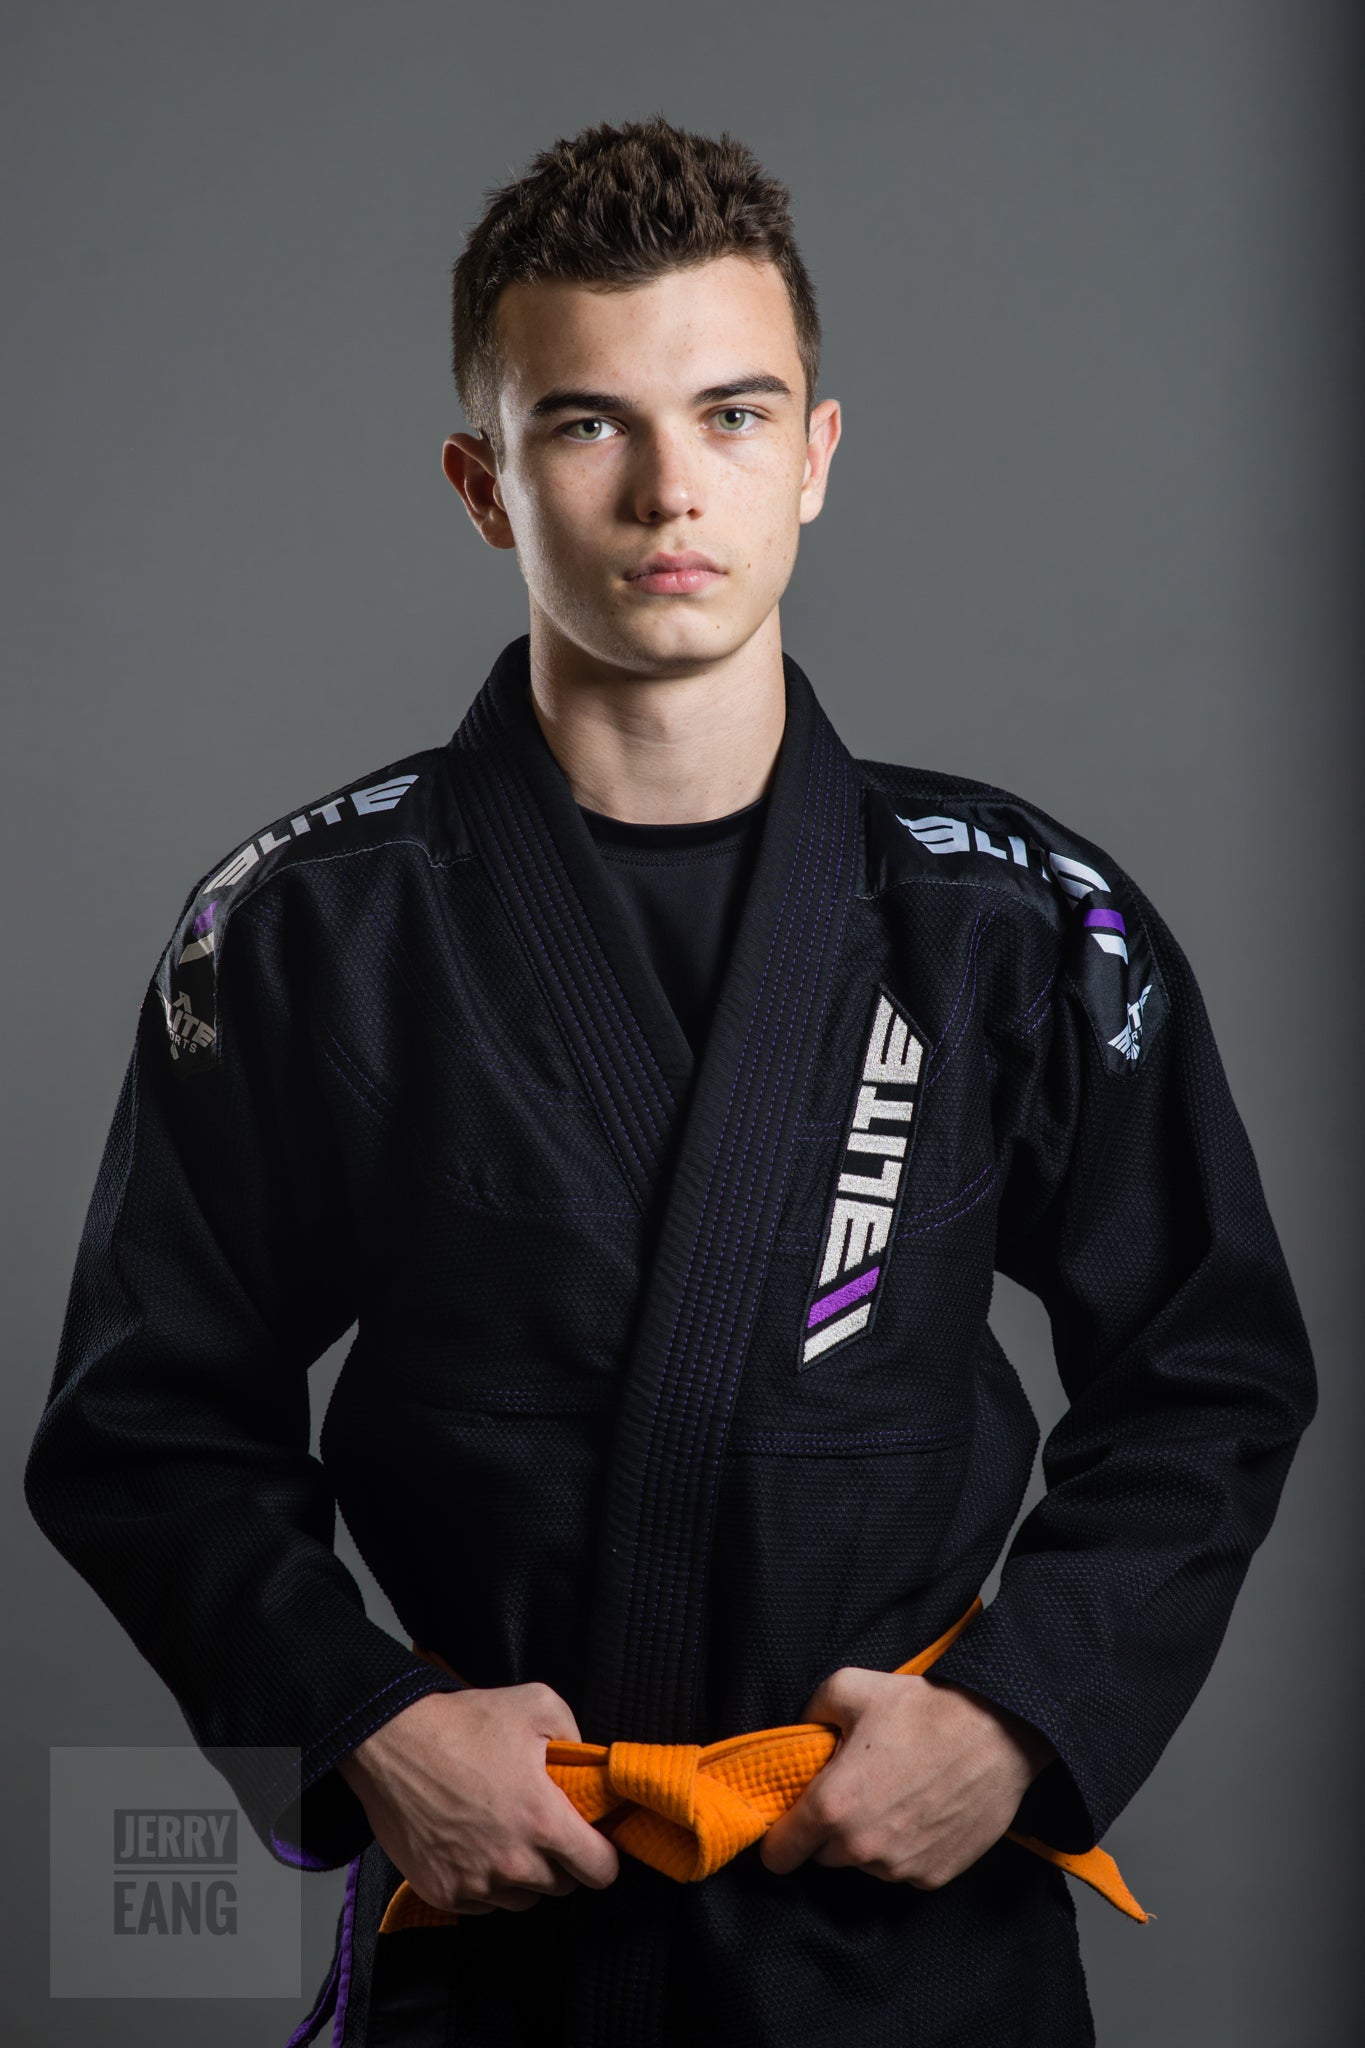 Elite Sports Team Elite Bjj Fighter James Riley Marroquin  Image4